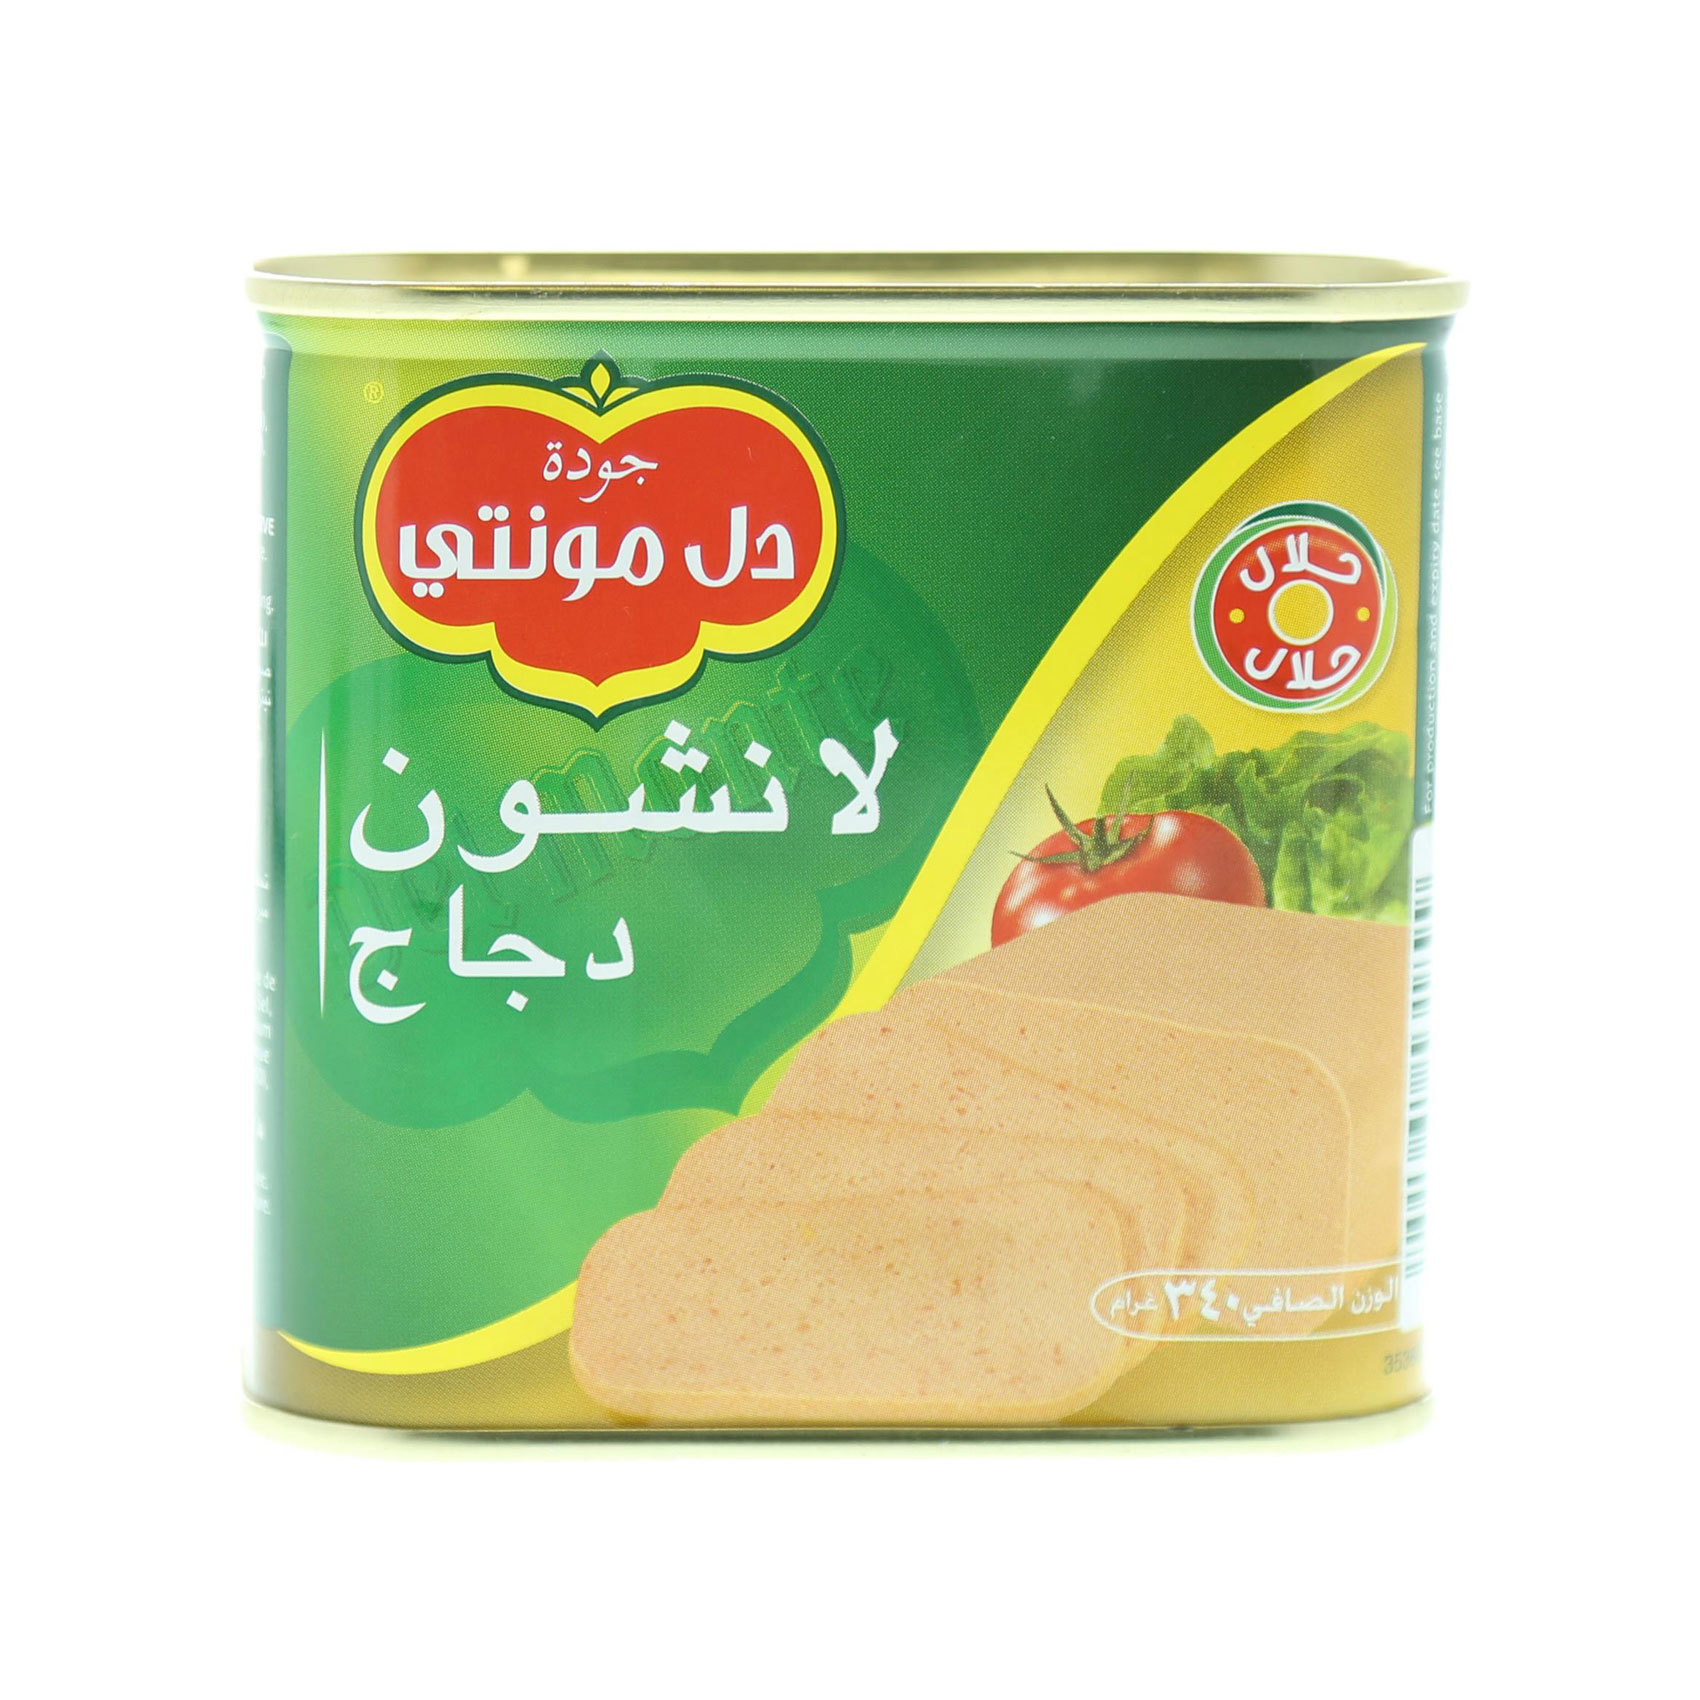 DEL MONTE CHICKEN LUNCHEON 340G